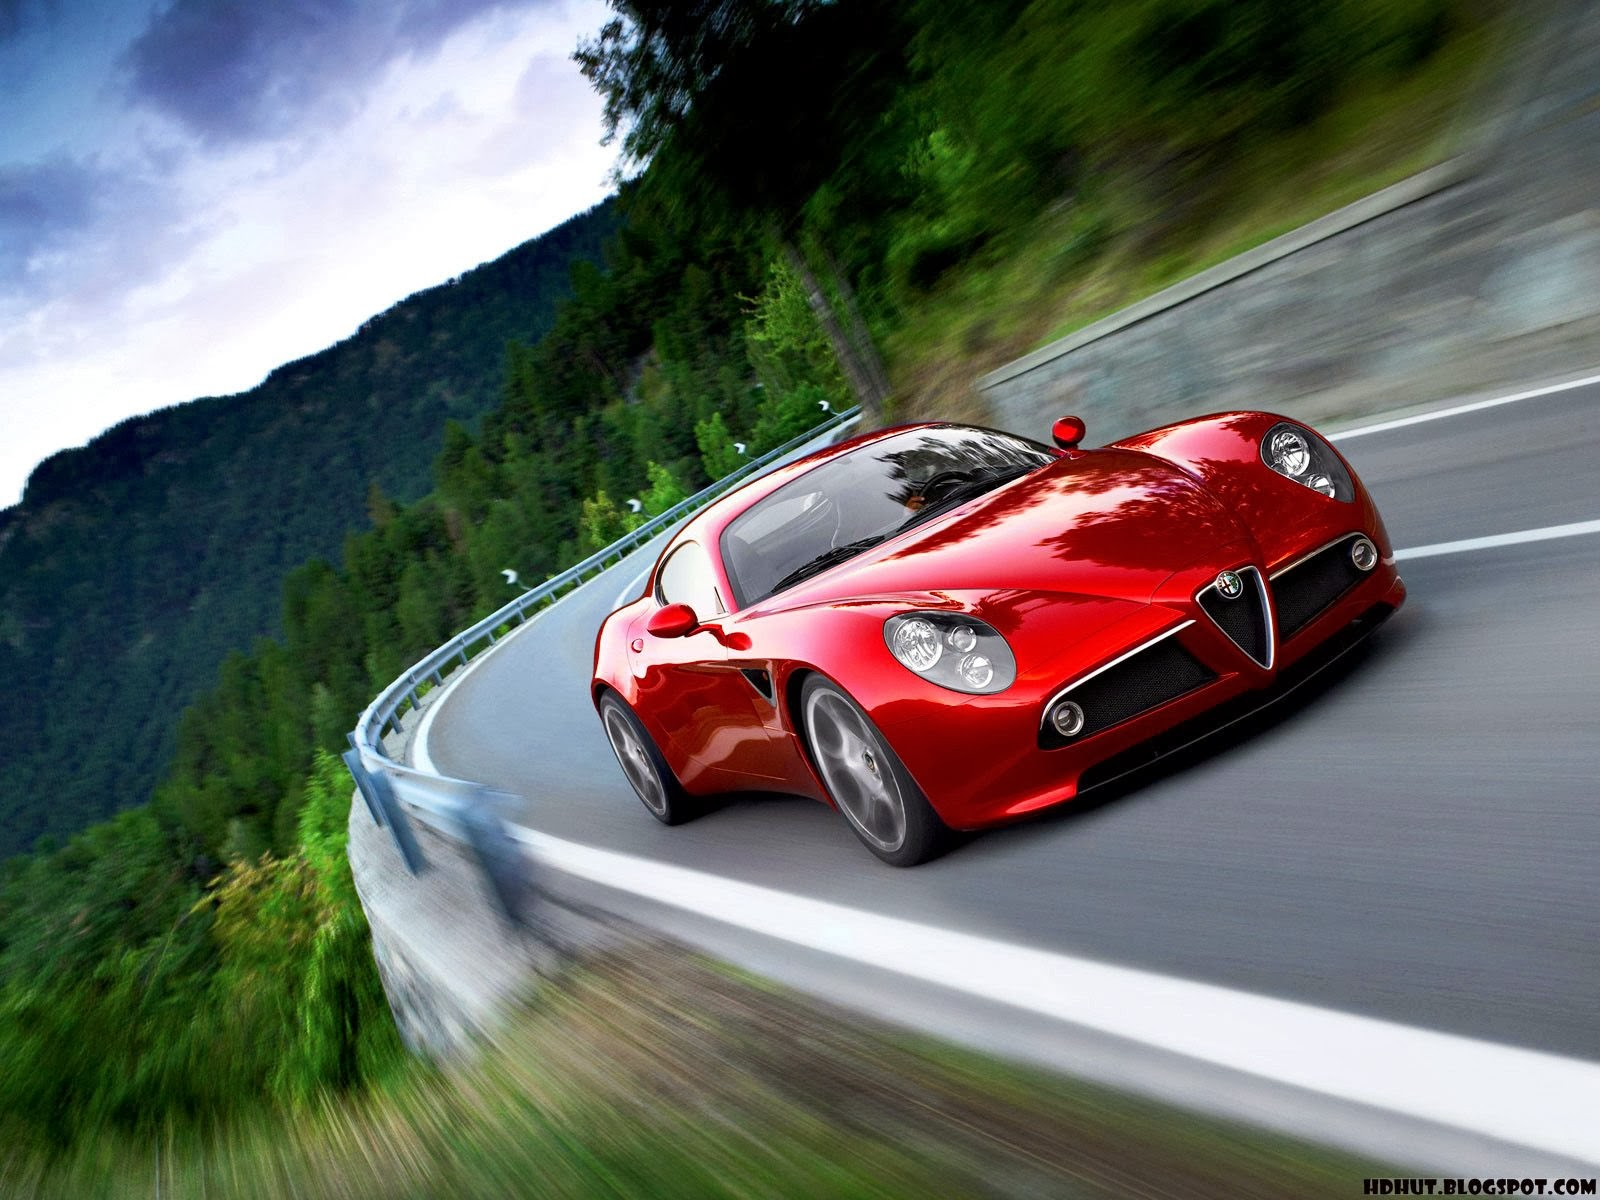 Top 27 Most Dashing And Amazing Car Wallpapers In Hd New For 2015